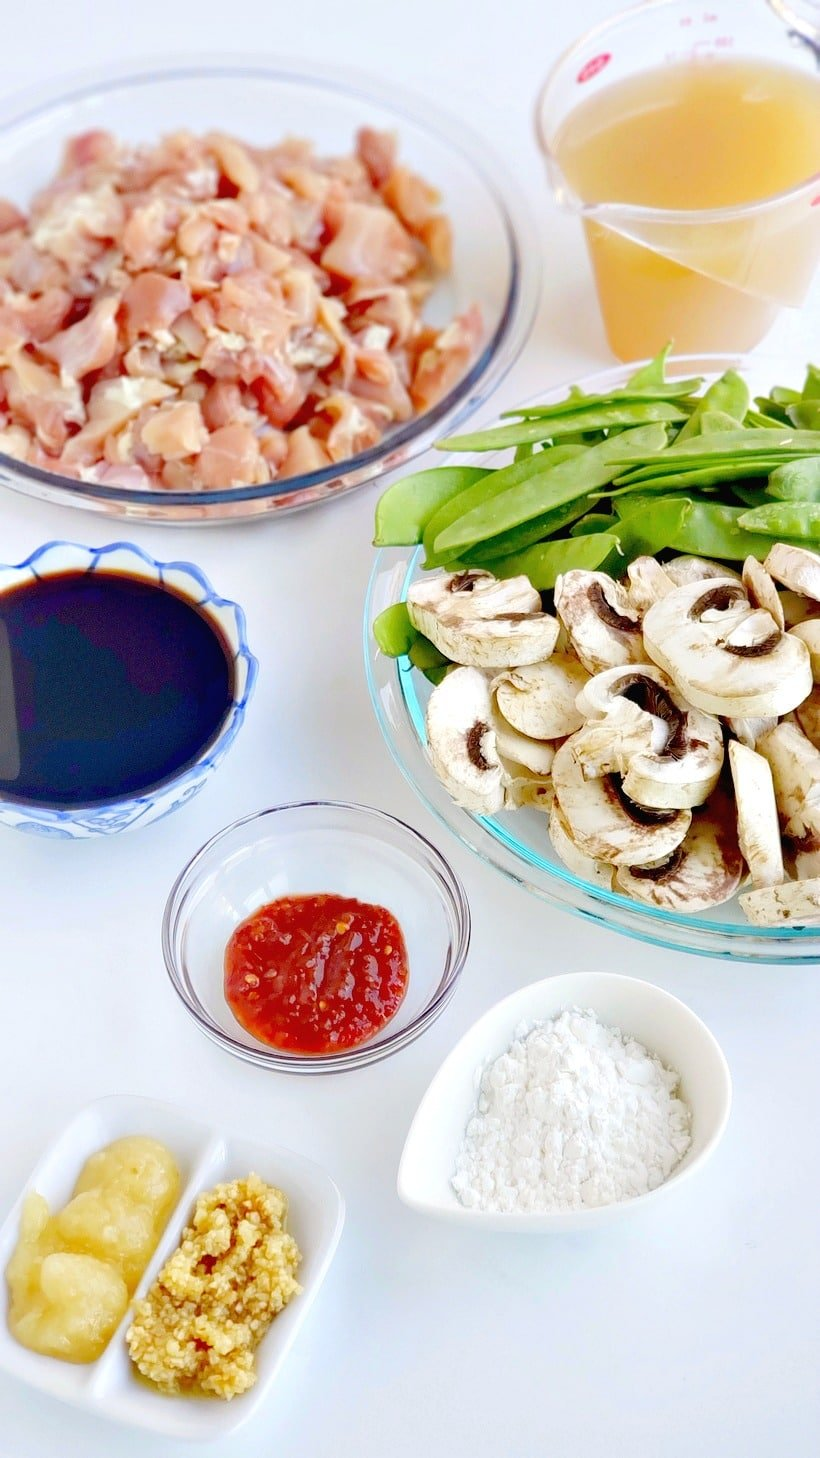 Ingredients to make chicken and snow pea stir-fry.